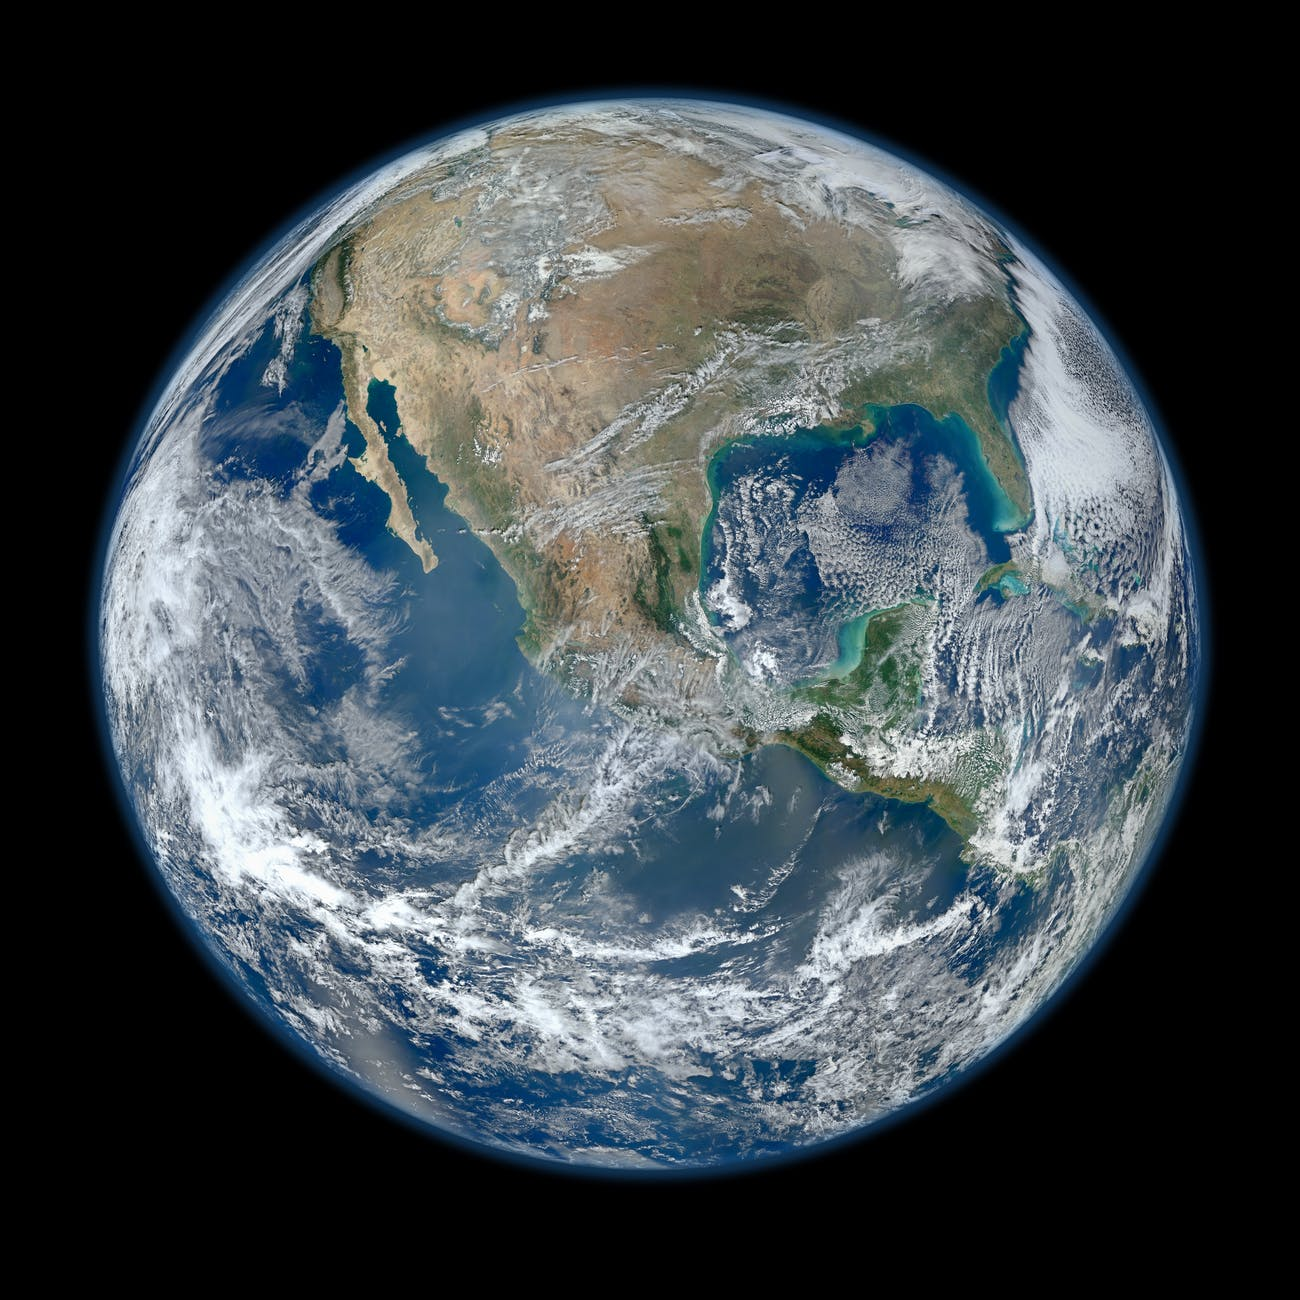 The Earth weighs around 6,588,000,000,000,000,000,000,000 tons!